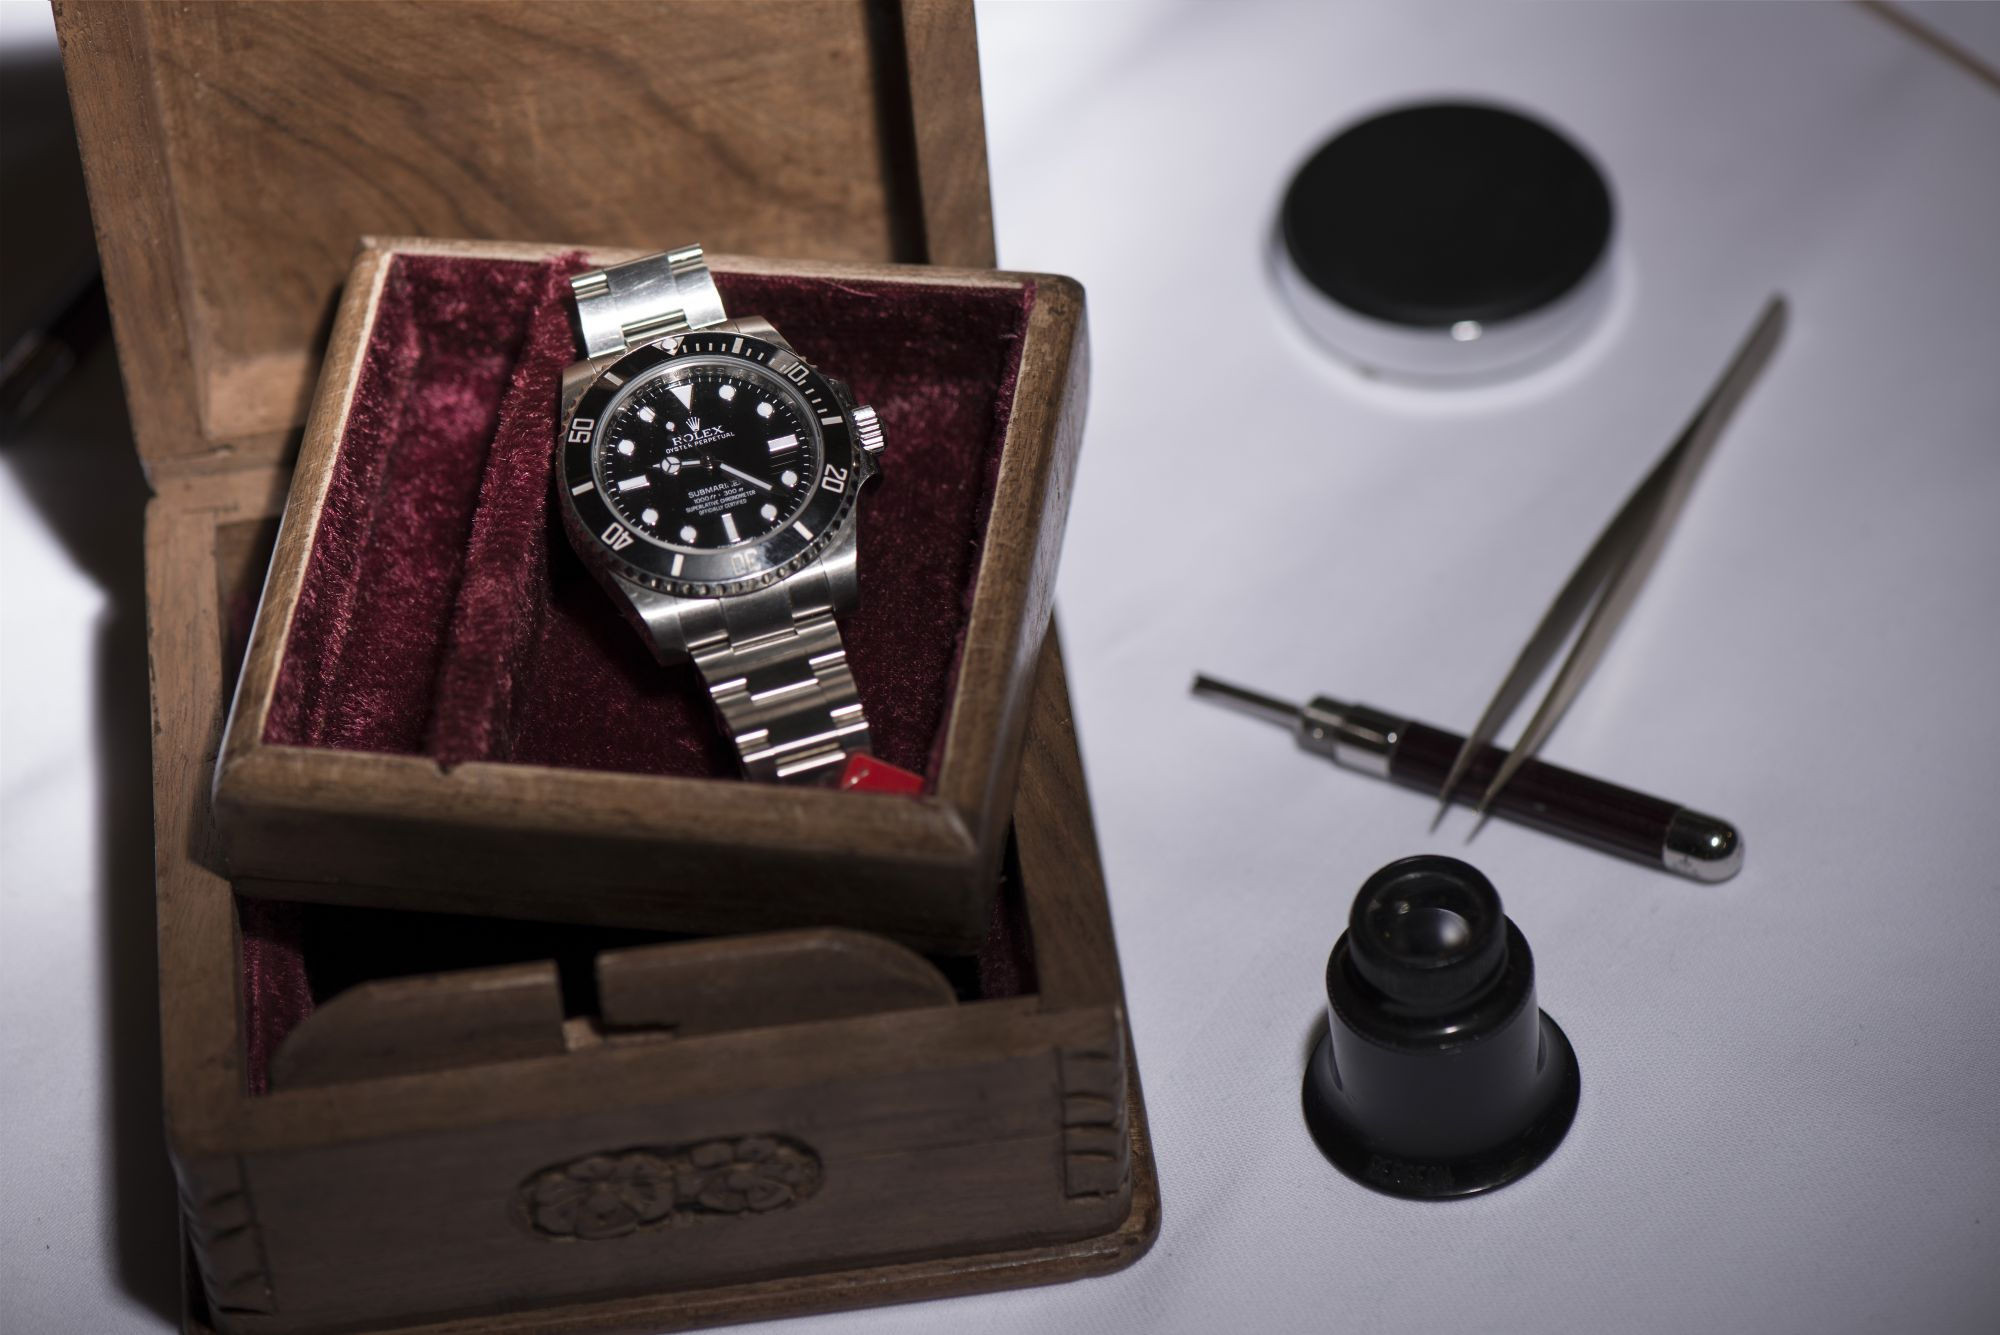 GENEVA, SWITZERLAND - NOVEMBER 06:  A Rolex Submariner wristwatch worn by explorer Mike Horn during his ascent of Mount Makalu expected to fetch between 21'000 to 41'000 USD is shown during a press preview at the auction house Christie's on November 6, 2015 in Geneva, Switzerland.  (Photo by Harold Cunningham/Getty Images)